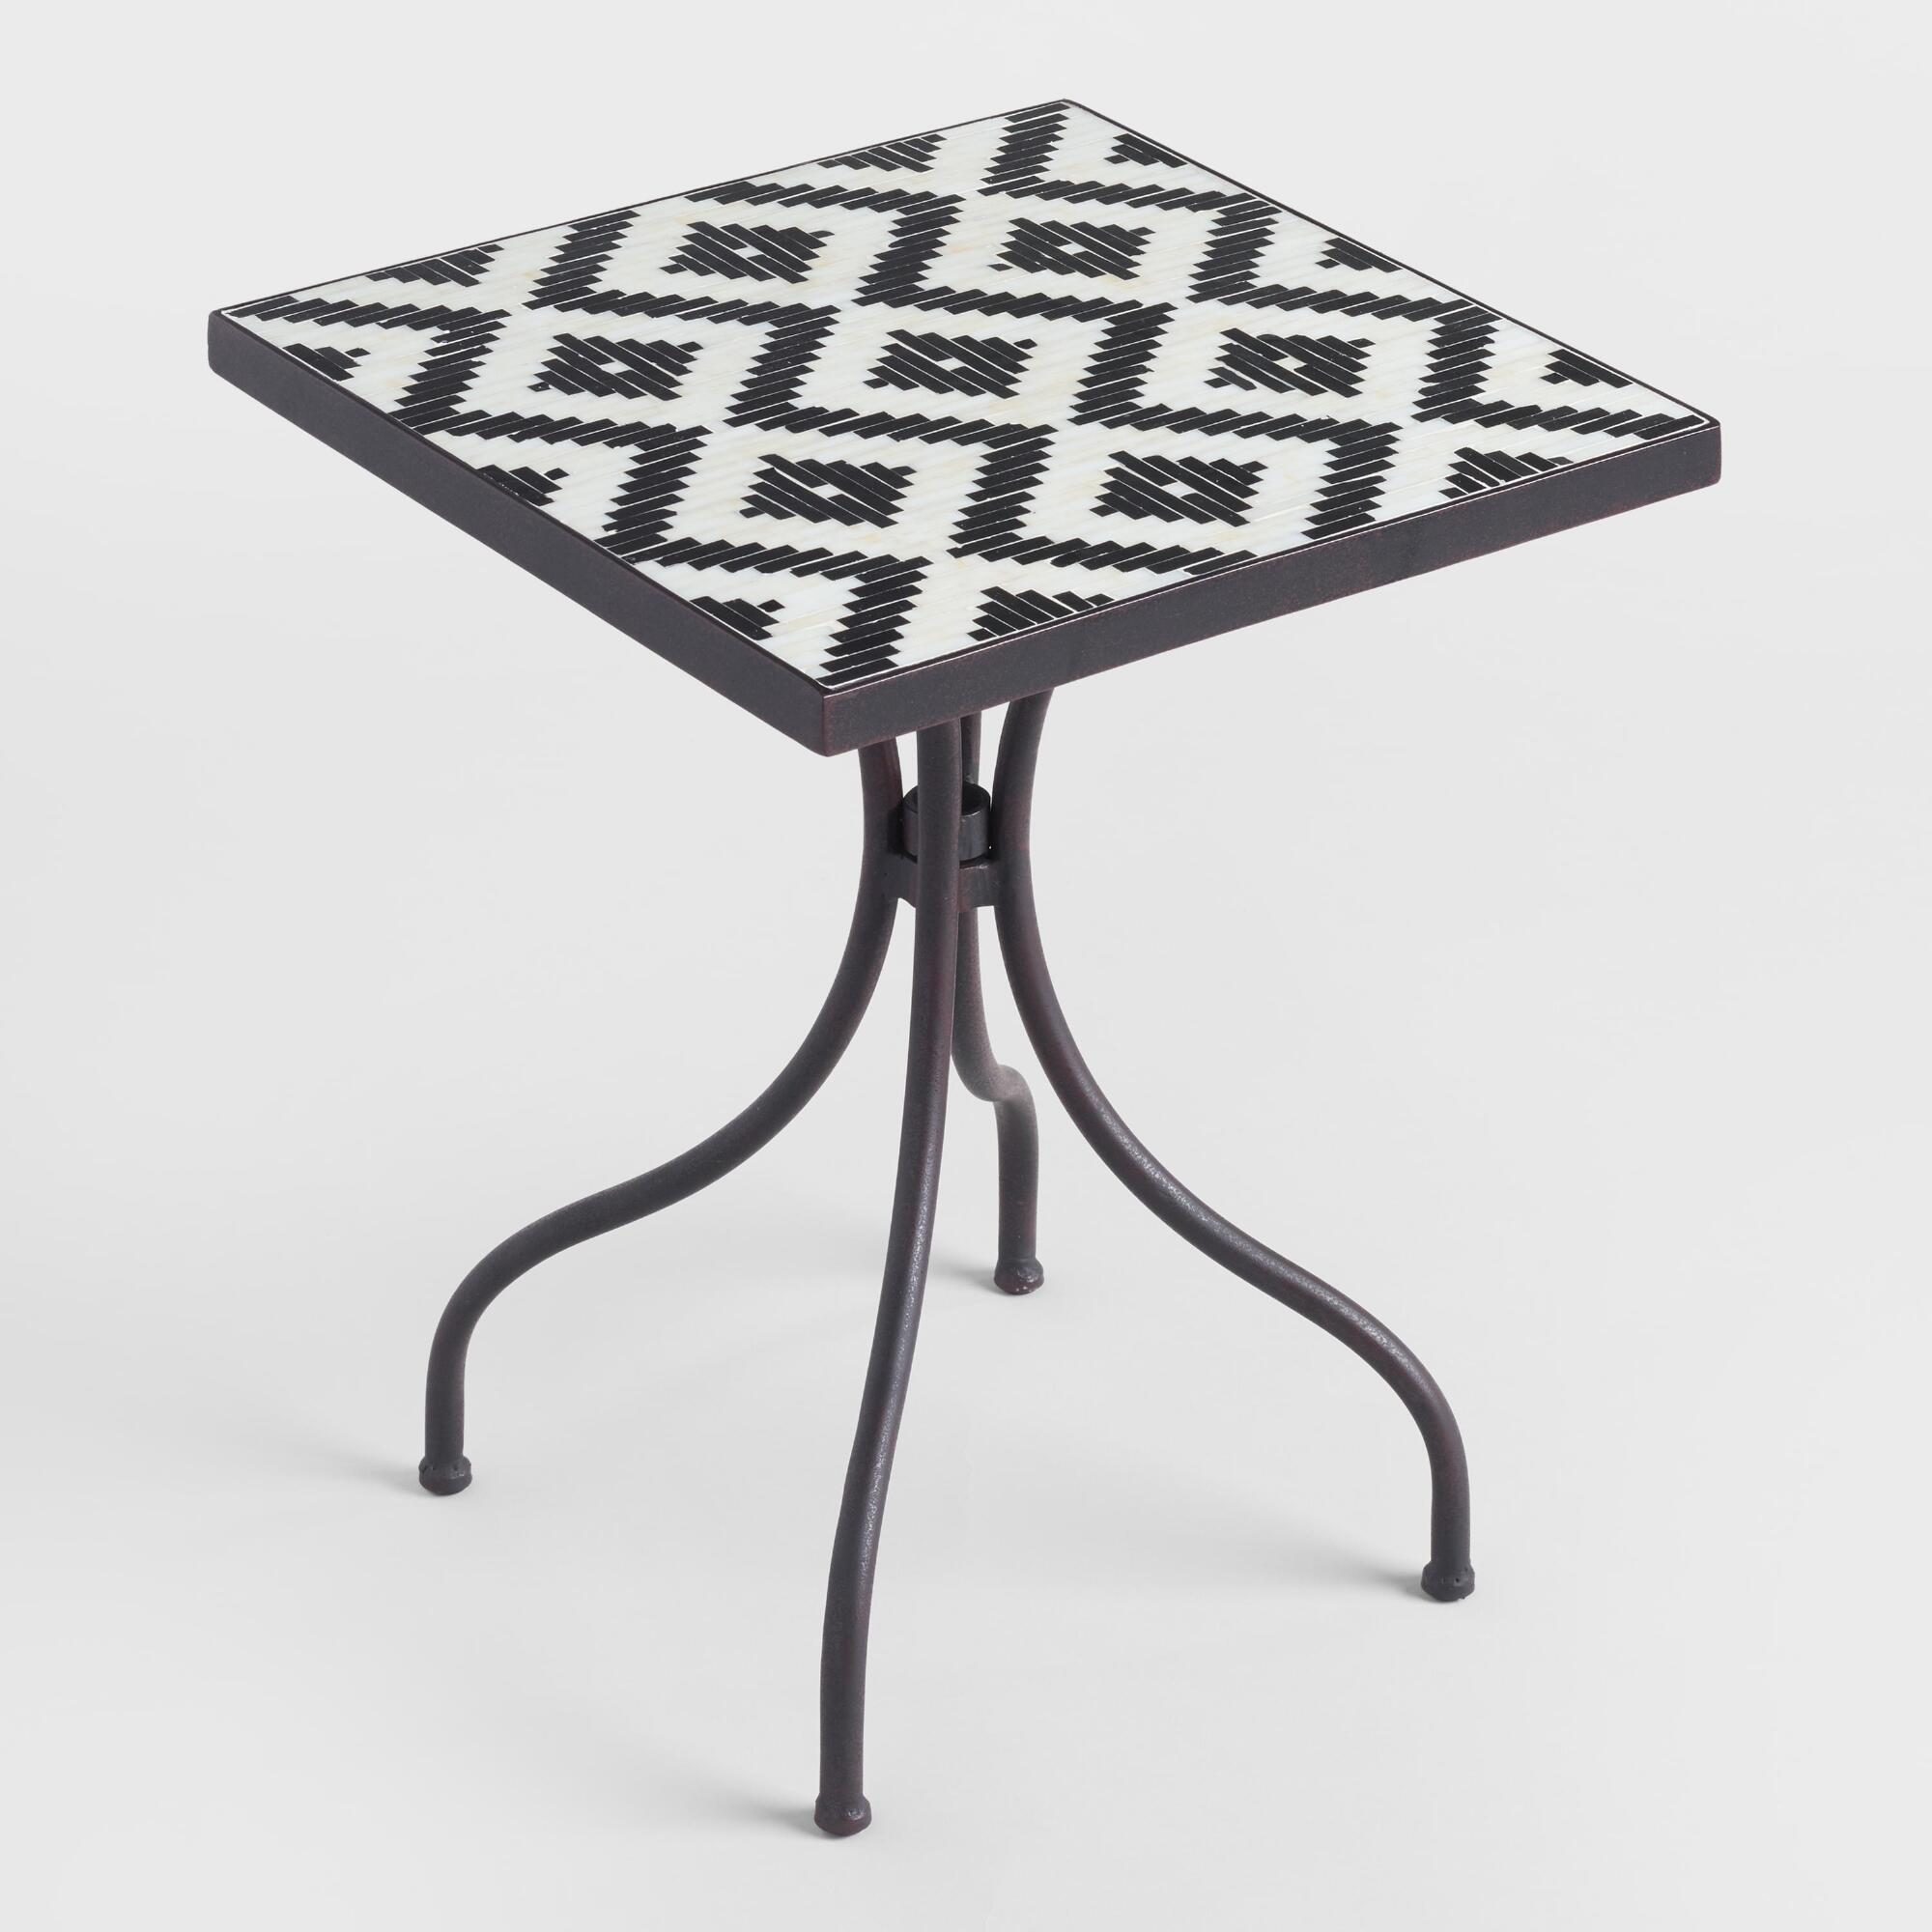 square black and white cadiz outdoor accent table world market iipsrv fcgi with wine rack below gold coffee asian bedside lamps unusual antique exterior doors kitchen hardware